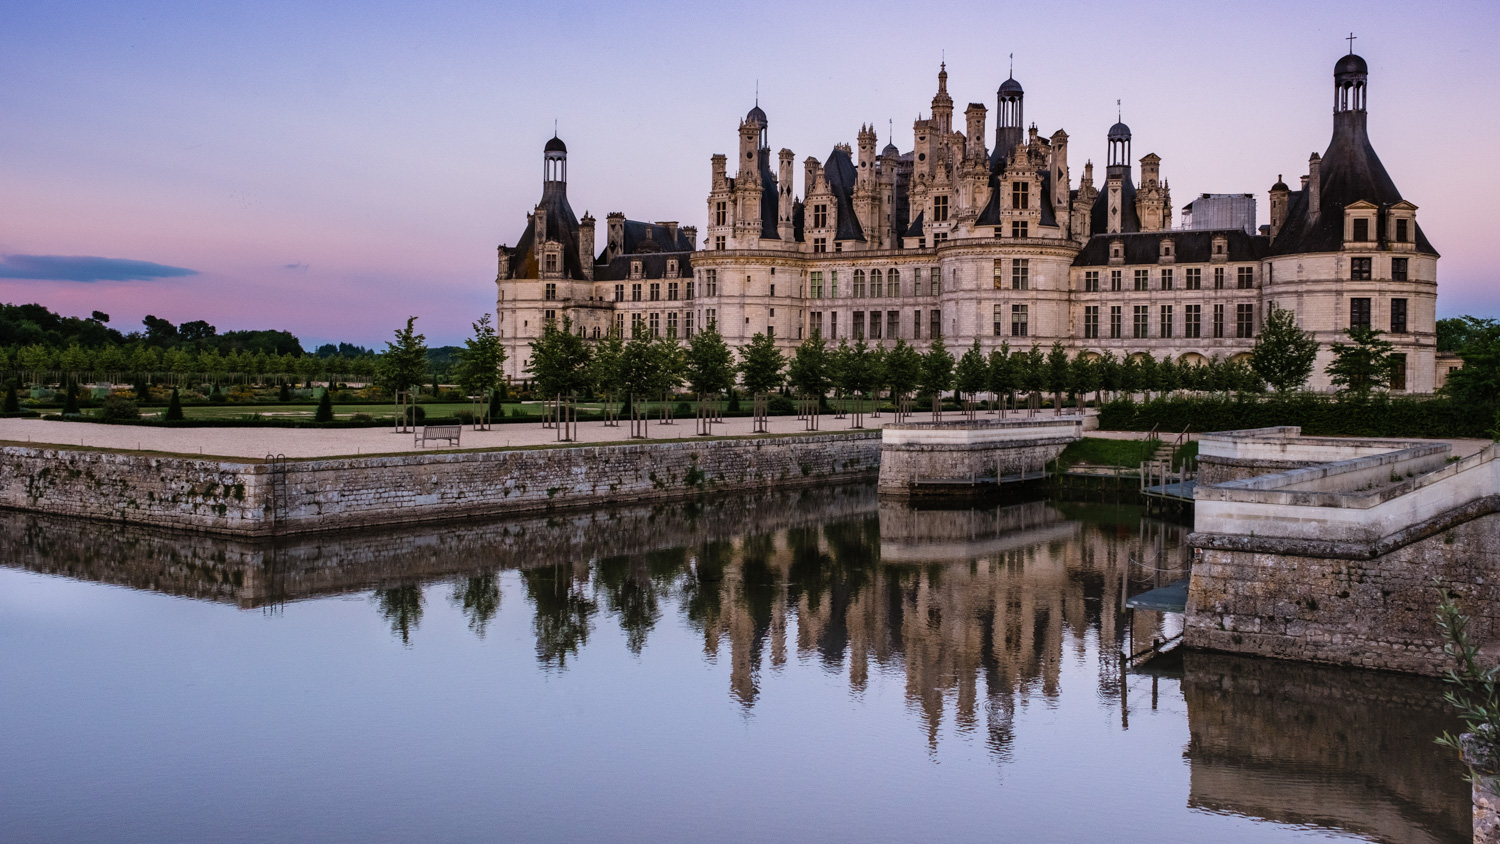 The Château de Chambord at the end of Golden Hour